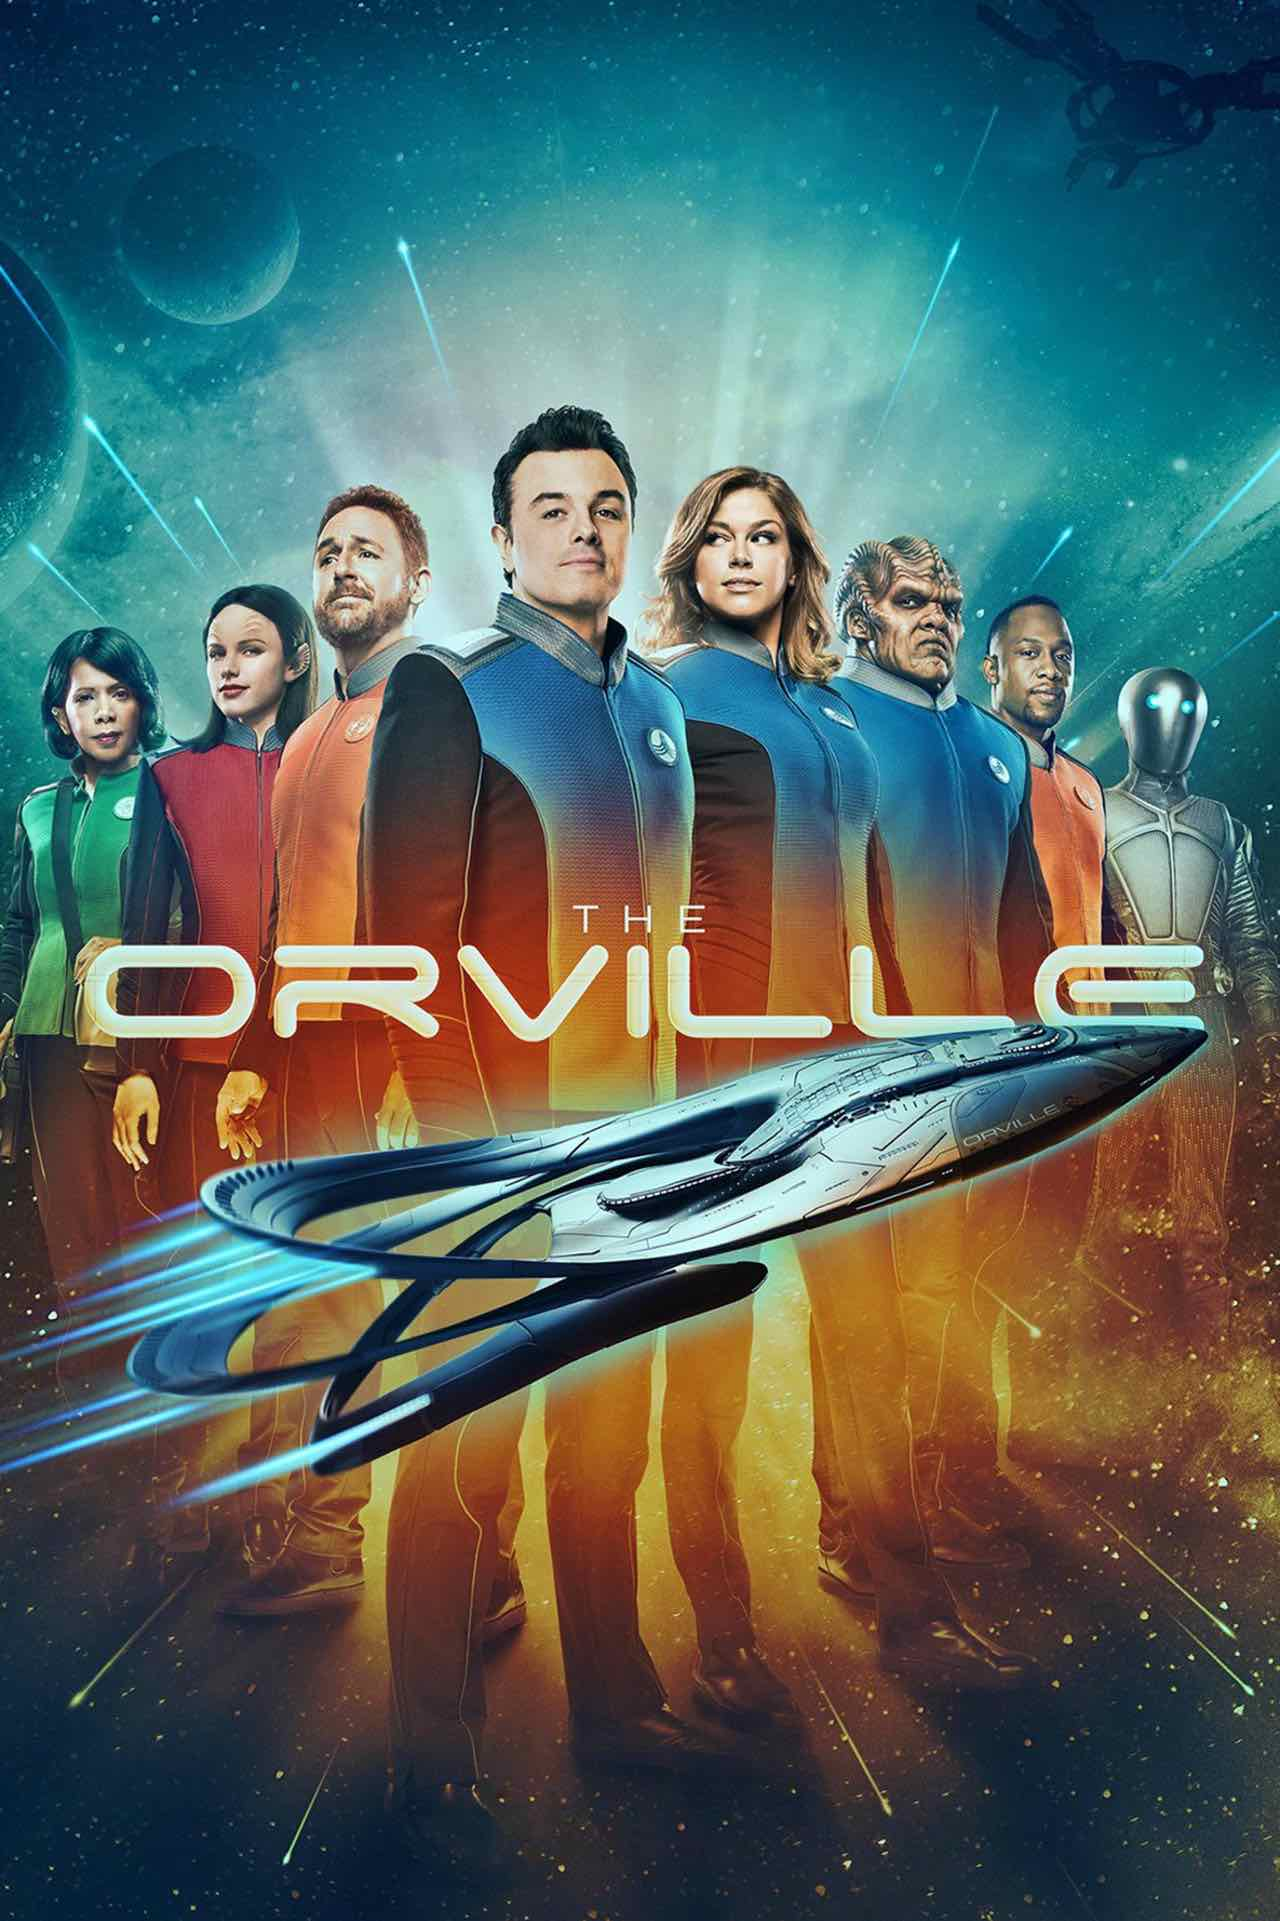 As 'Star Trek: Discovery' subverts audience expectations of what 'Star Trek' should be, here is why 'The Orville' is the most 'Star Trek' show on TV.